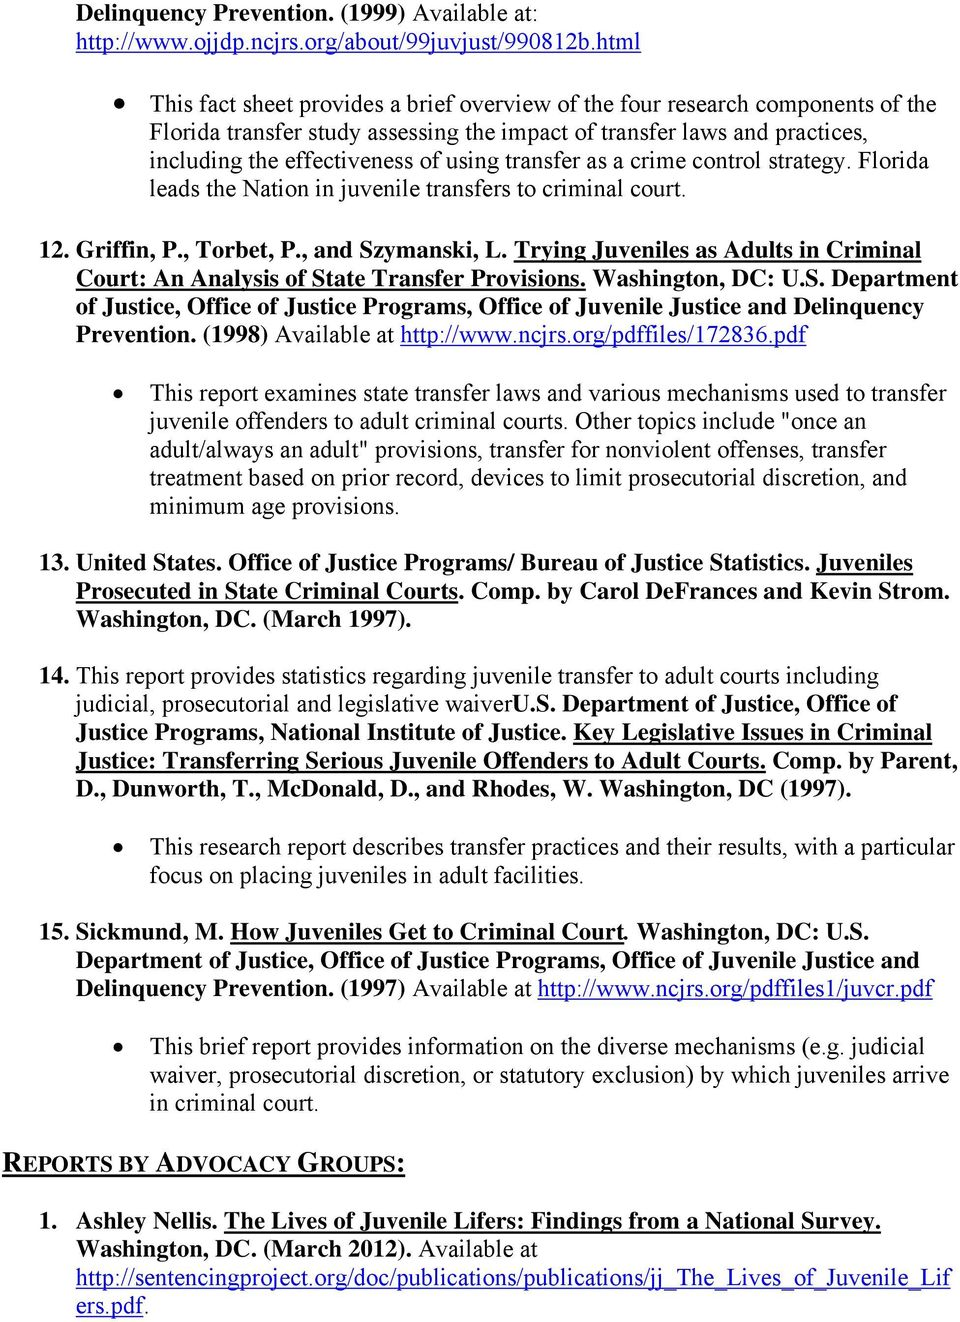 Juvenile delinquency research paper